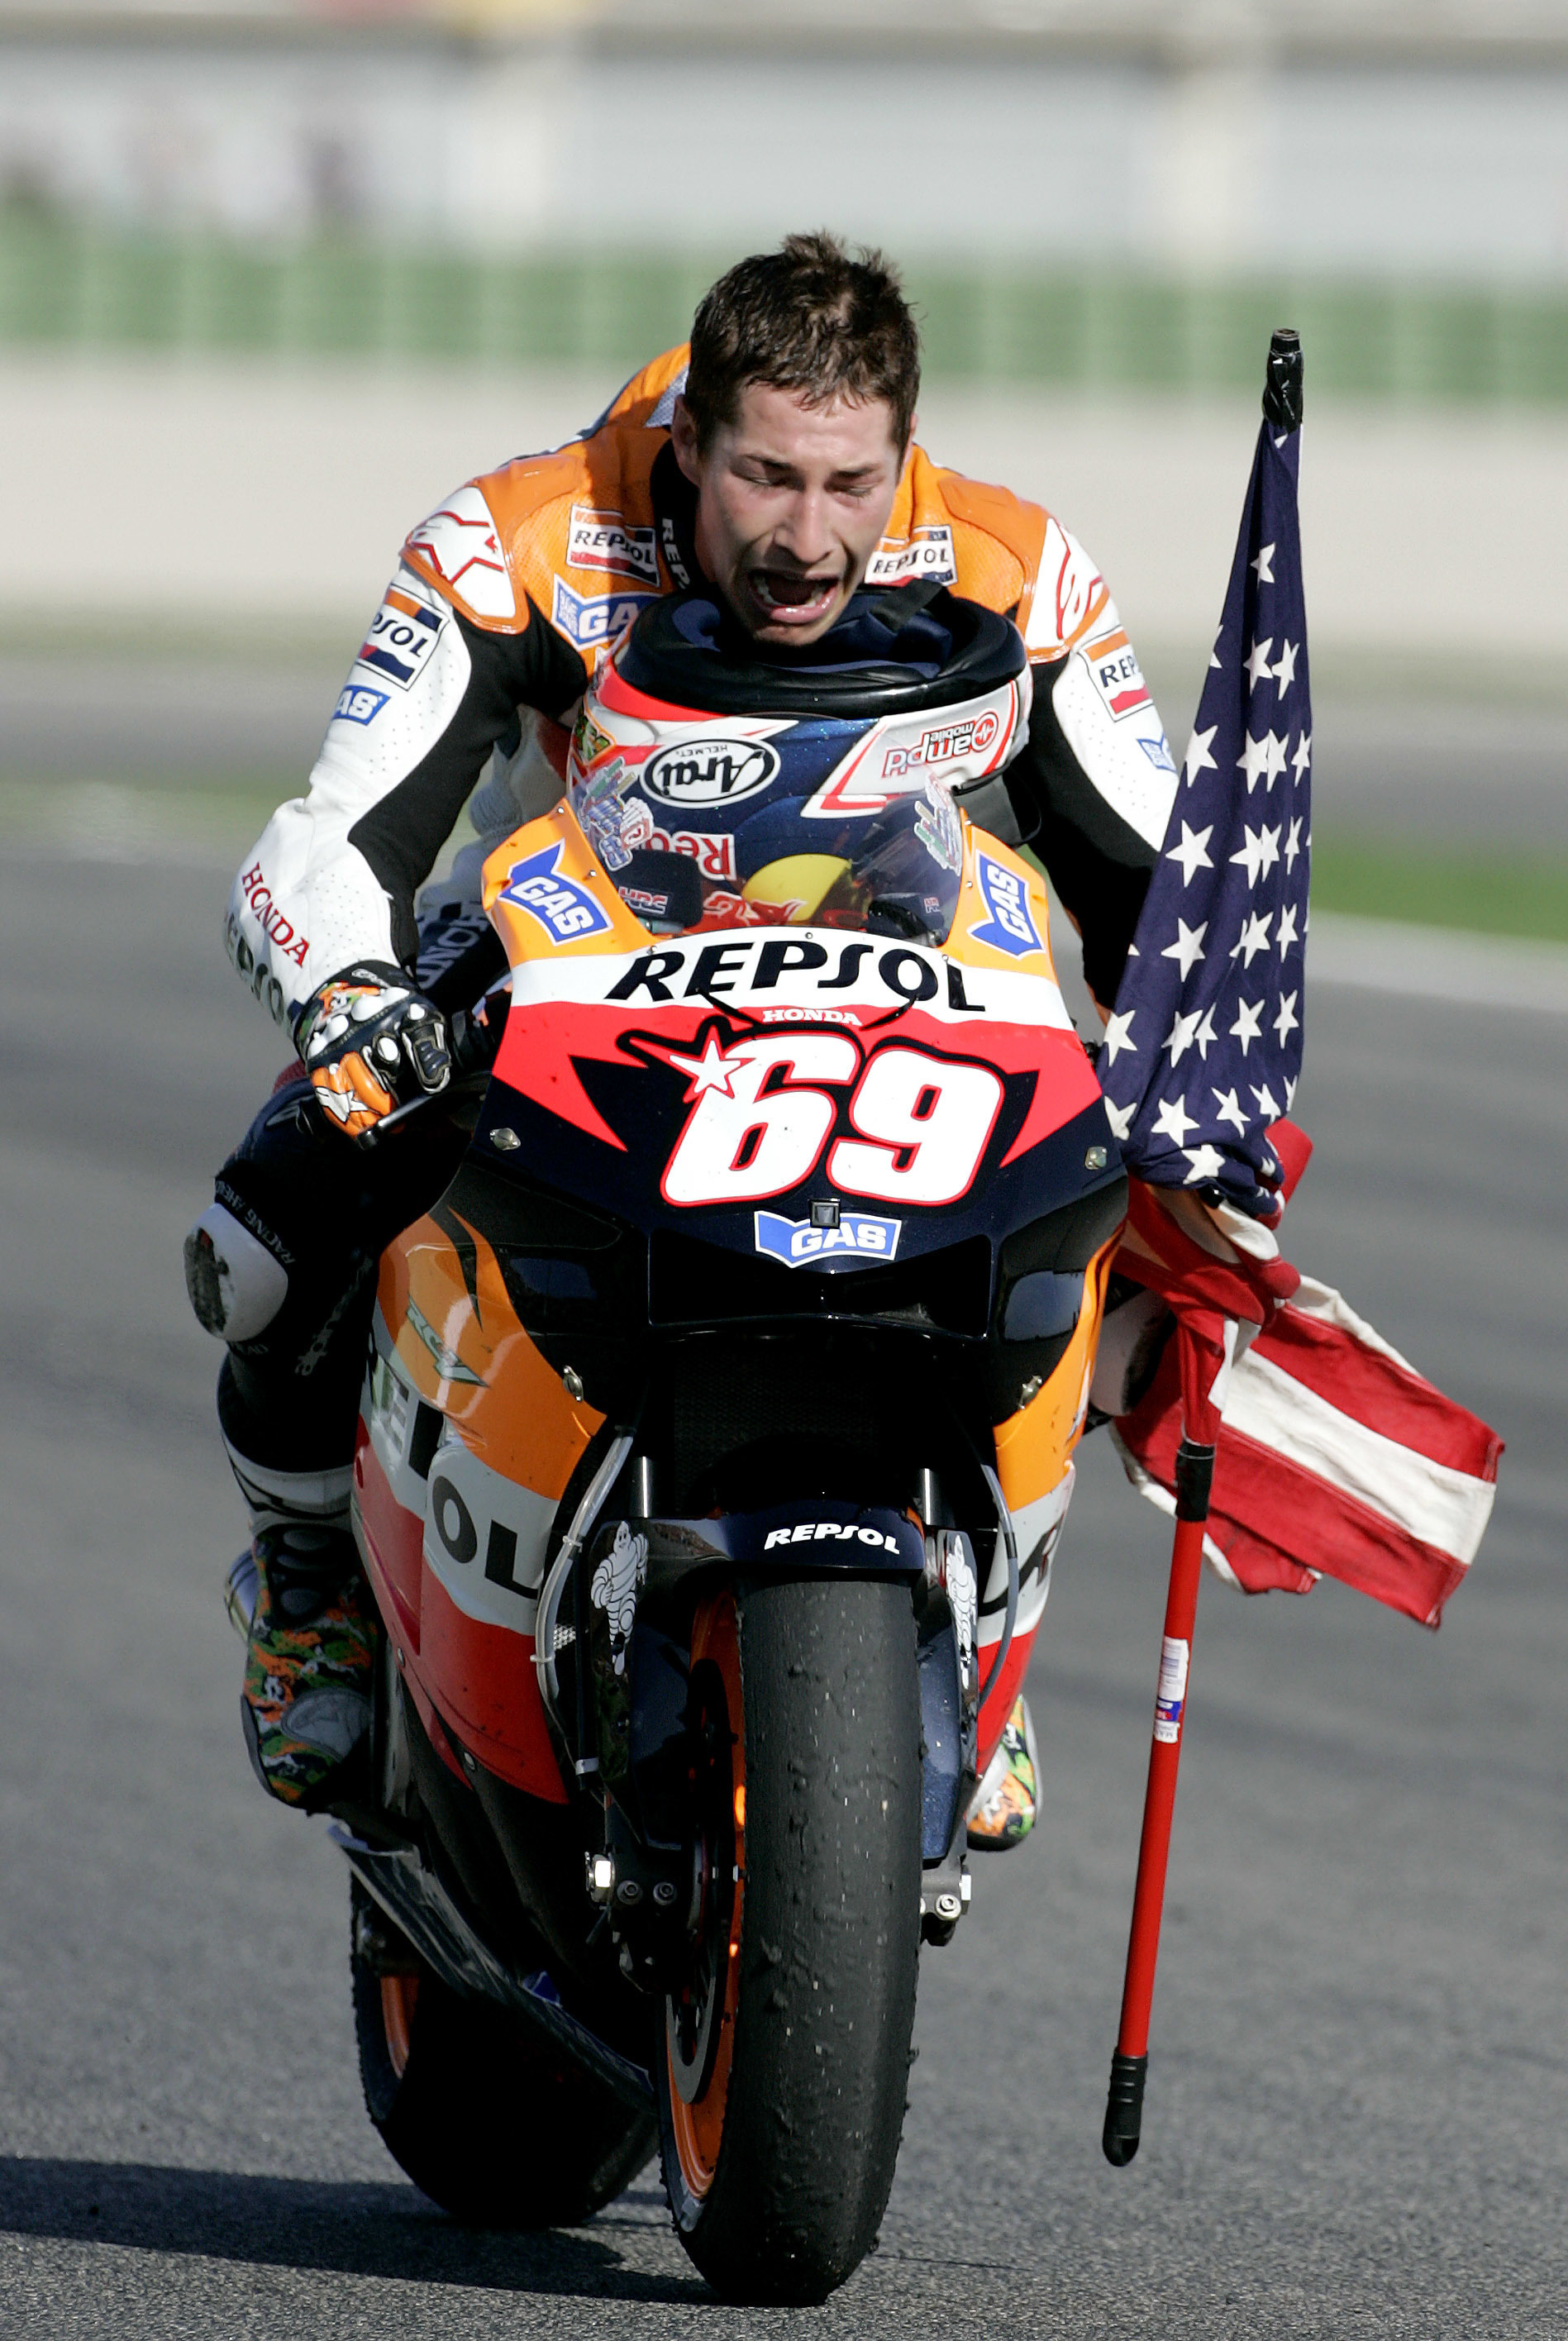 FILE - In this Sunday Oct. 29, 2006 file photo, United States Honda rider Nicky Hayden celebrates after winning the world Moto GP championship at the Cheste racetrack near Valencia, Spain. American motorcycle racer Nicky Hayden has been hit by a car while out training on his bicycle, Wednesday, May 17, 2017. The Superbike World Championship says the incident occurred along the Rimini coast, Italy, Wednesday.  The 35-year-old Hayden who won the MotoGP title in 2006 was transported to a local hospital for treatment. (AP Photo/Bernat Armangue, File)